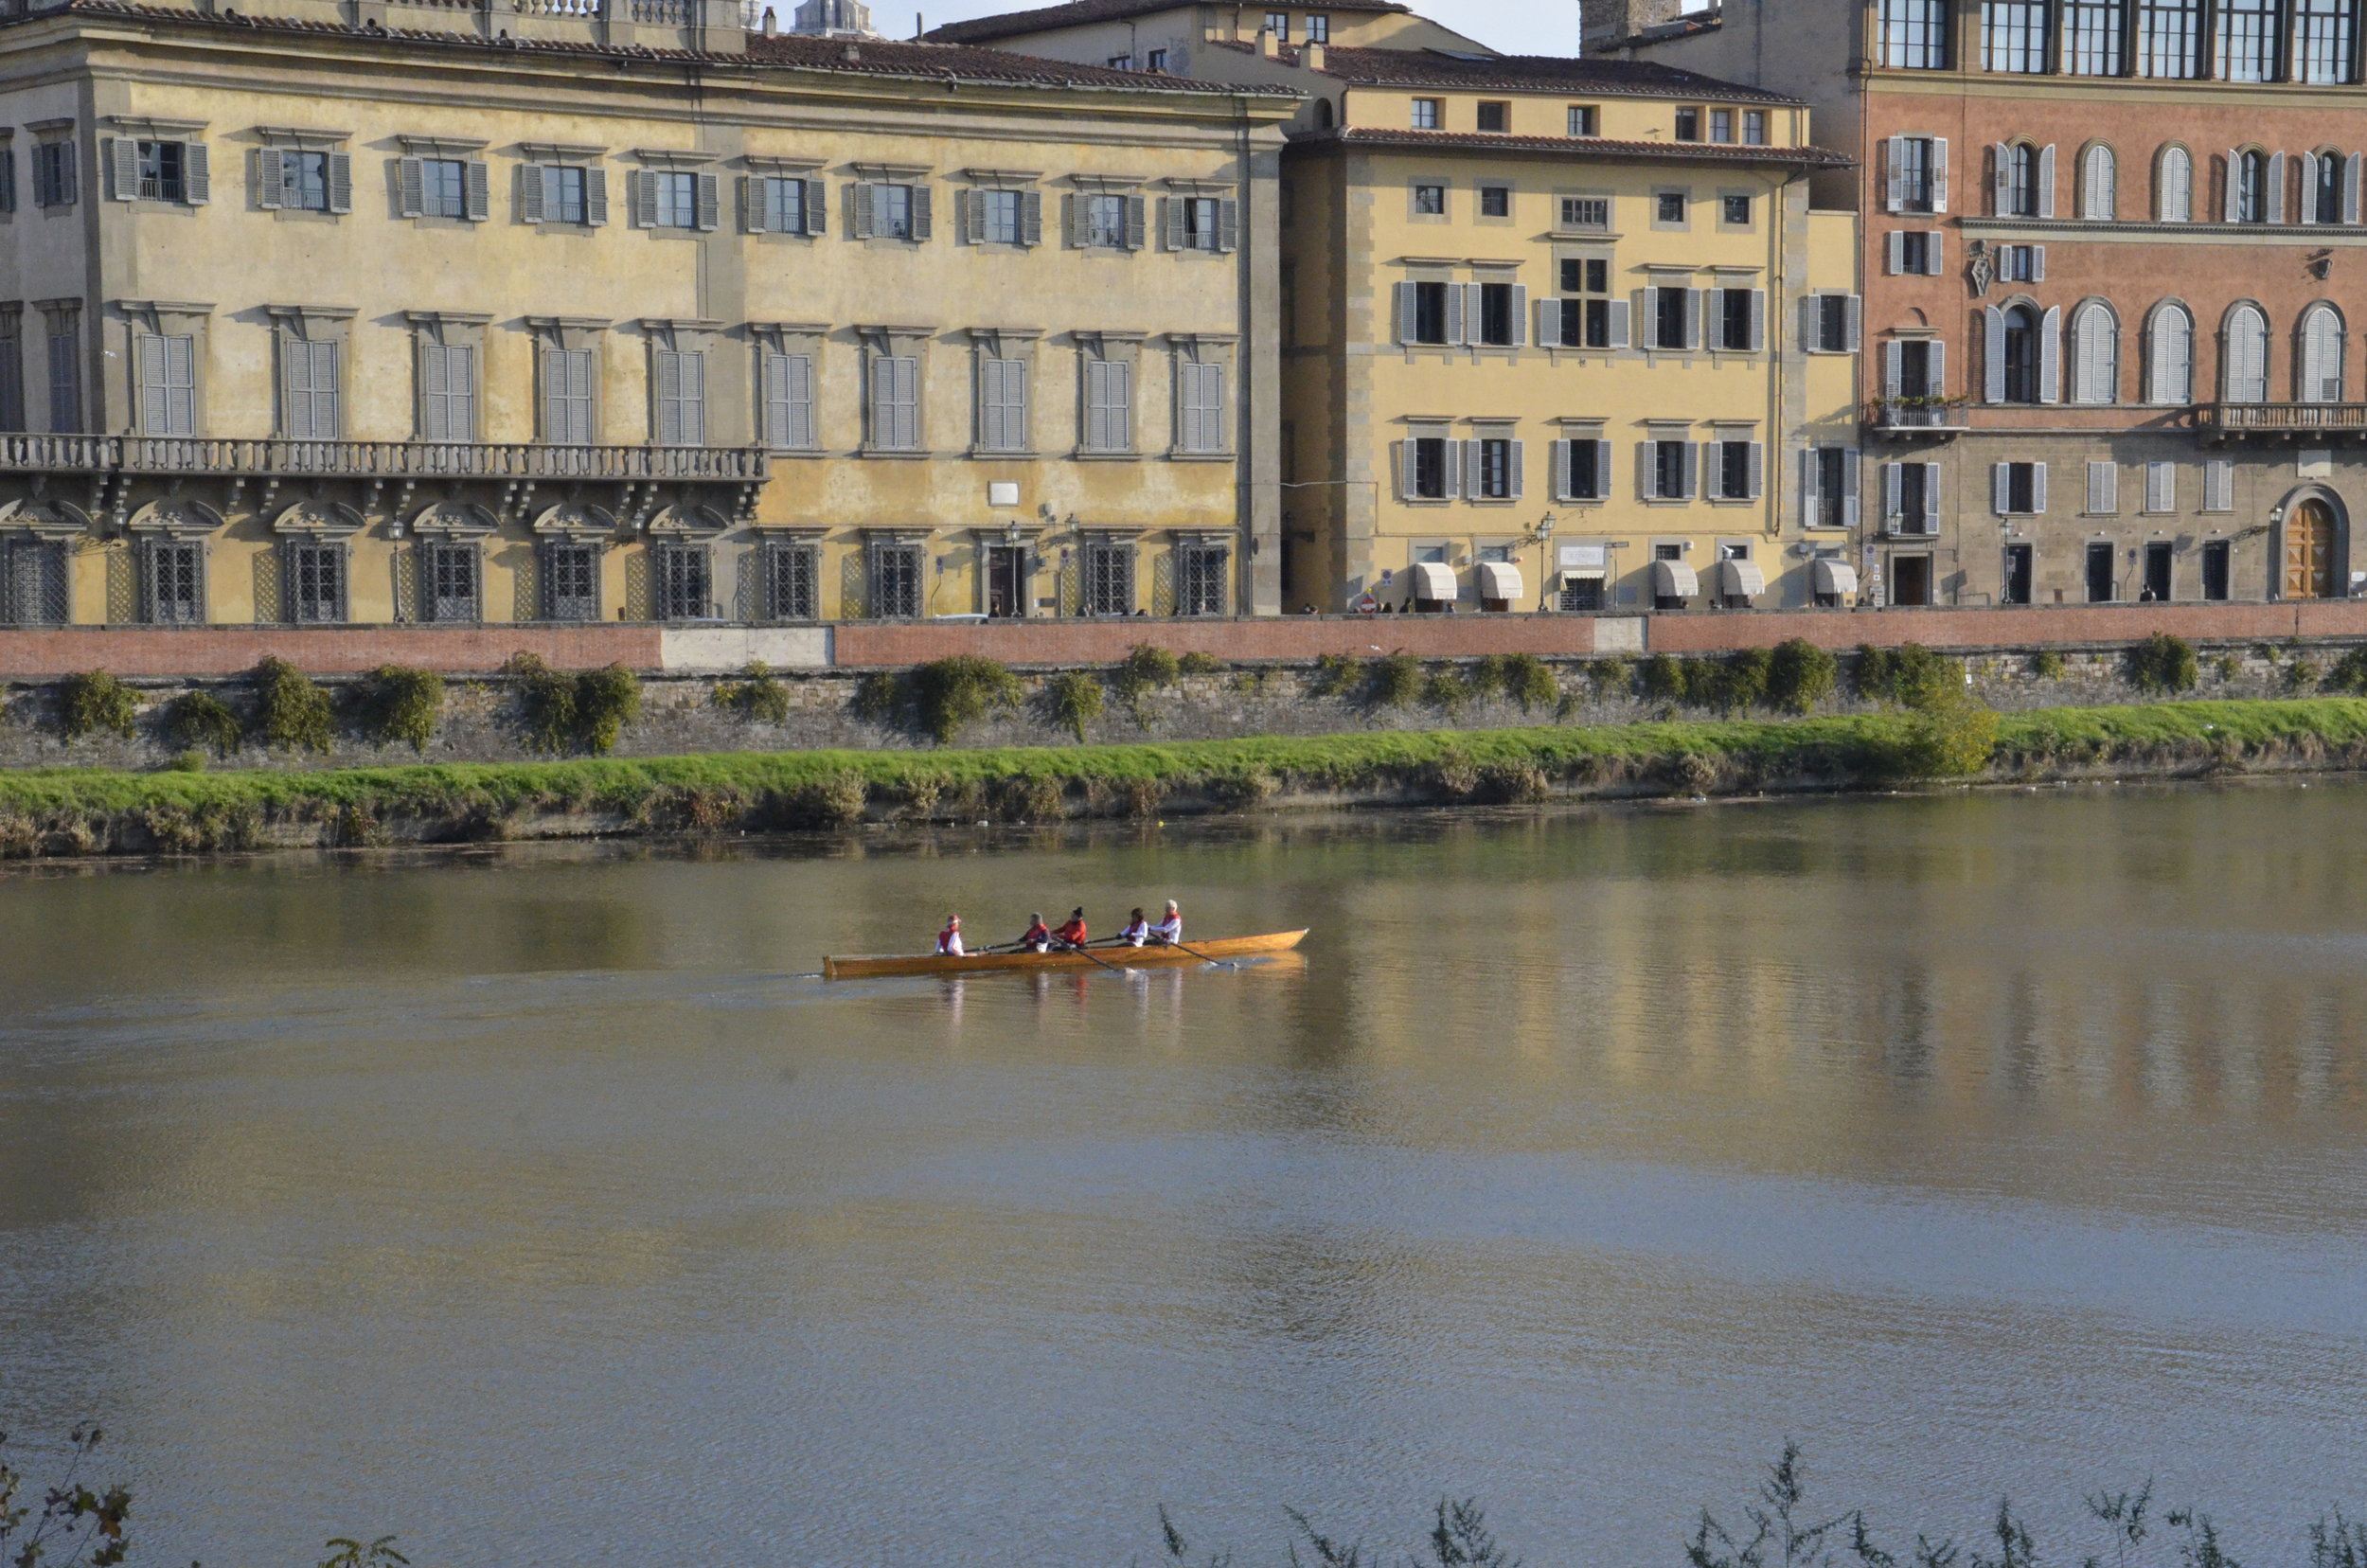 Early morning rowers on the Arno